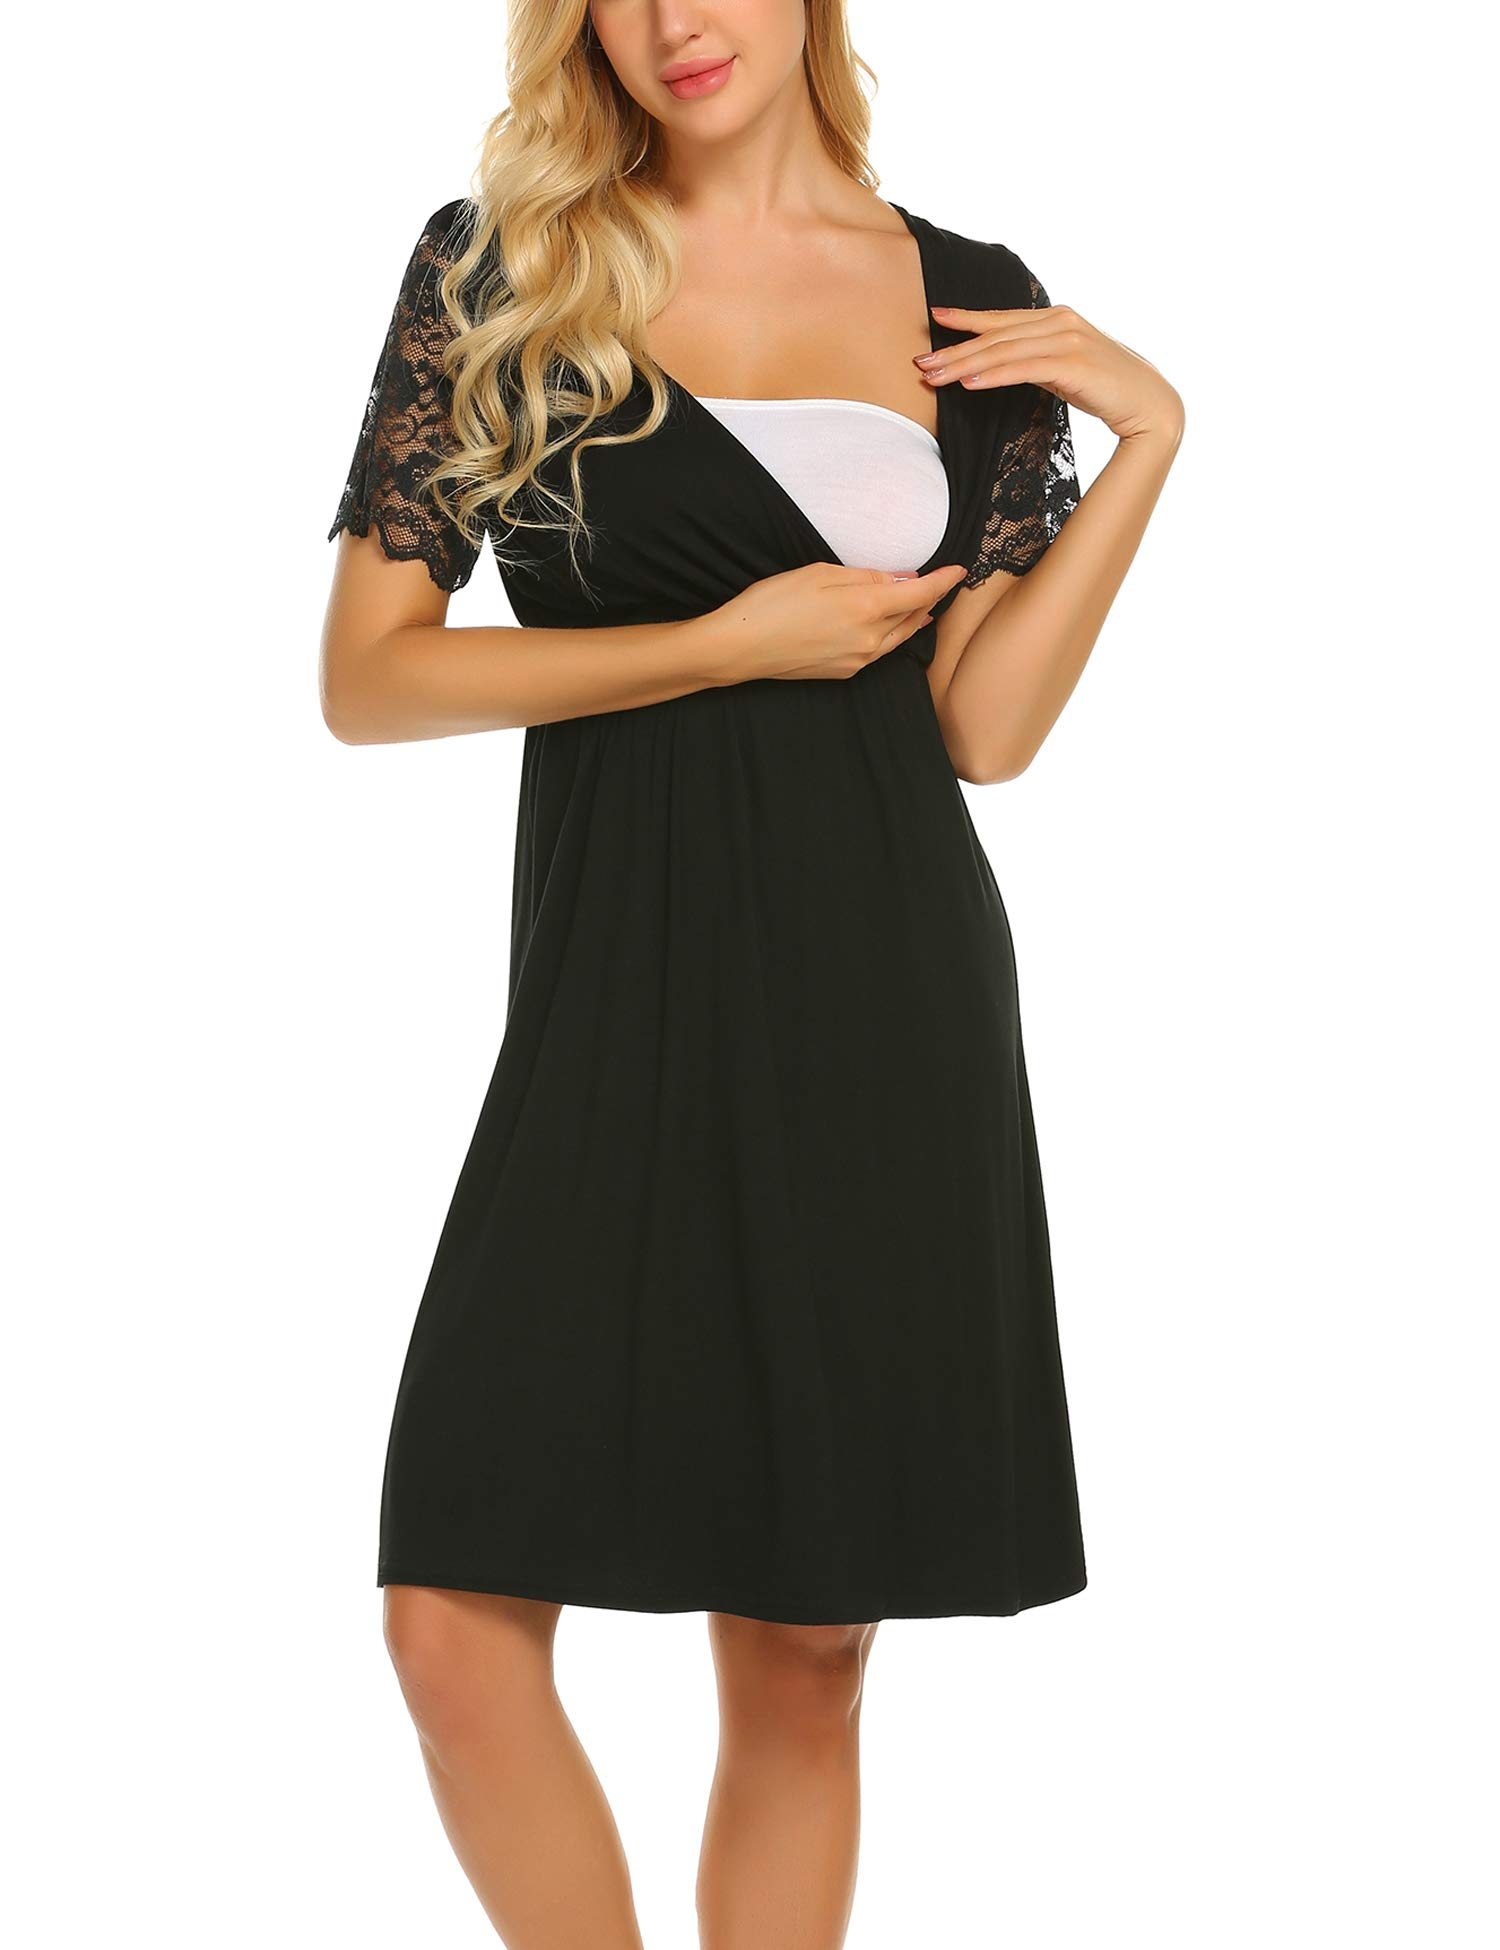 MAXMODA Womens Delivery/Labor/Maternity/Nursing Nightgown Pregnancy Gown for Hospital Breastfeeding Dress (Large, Black)